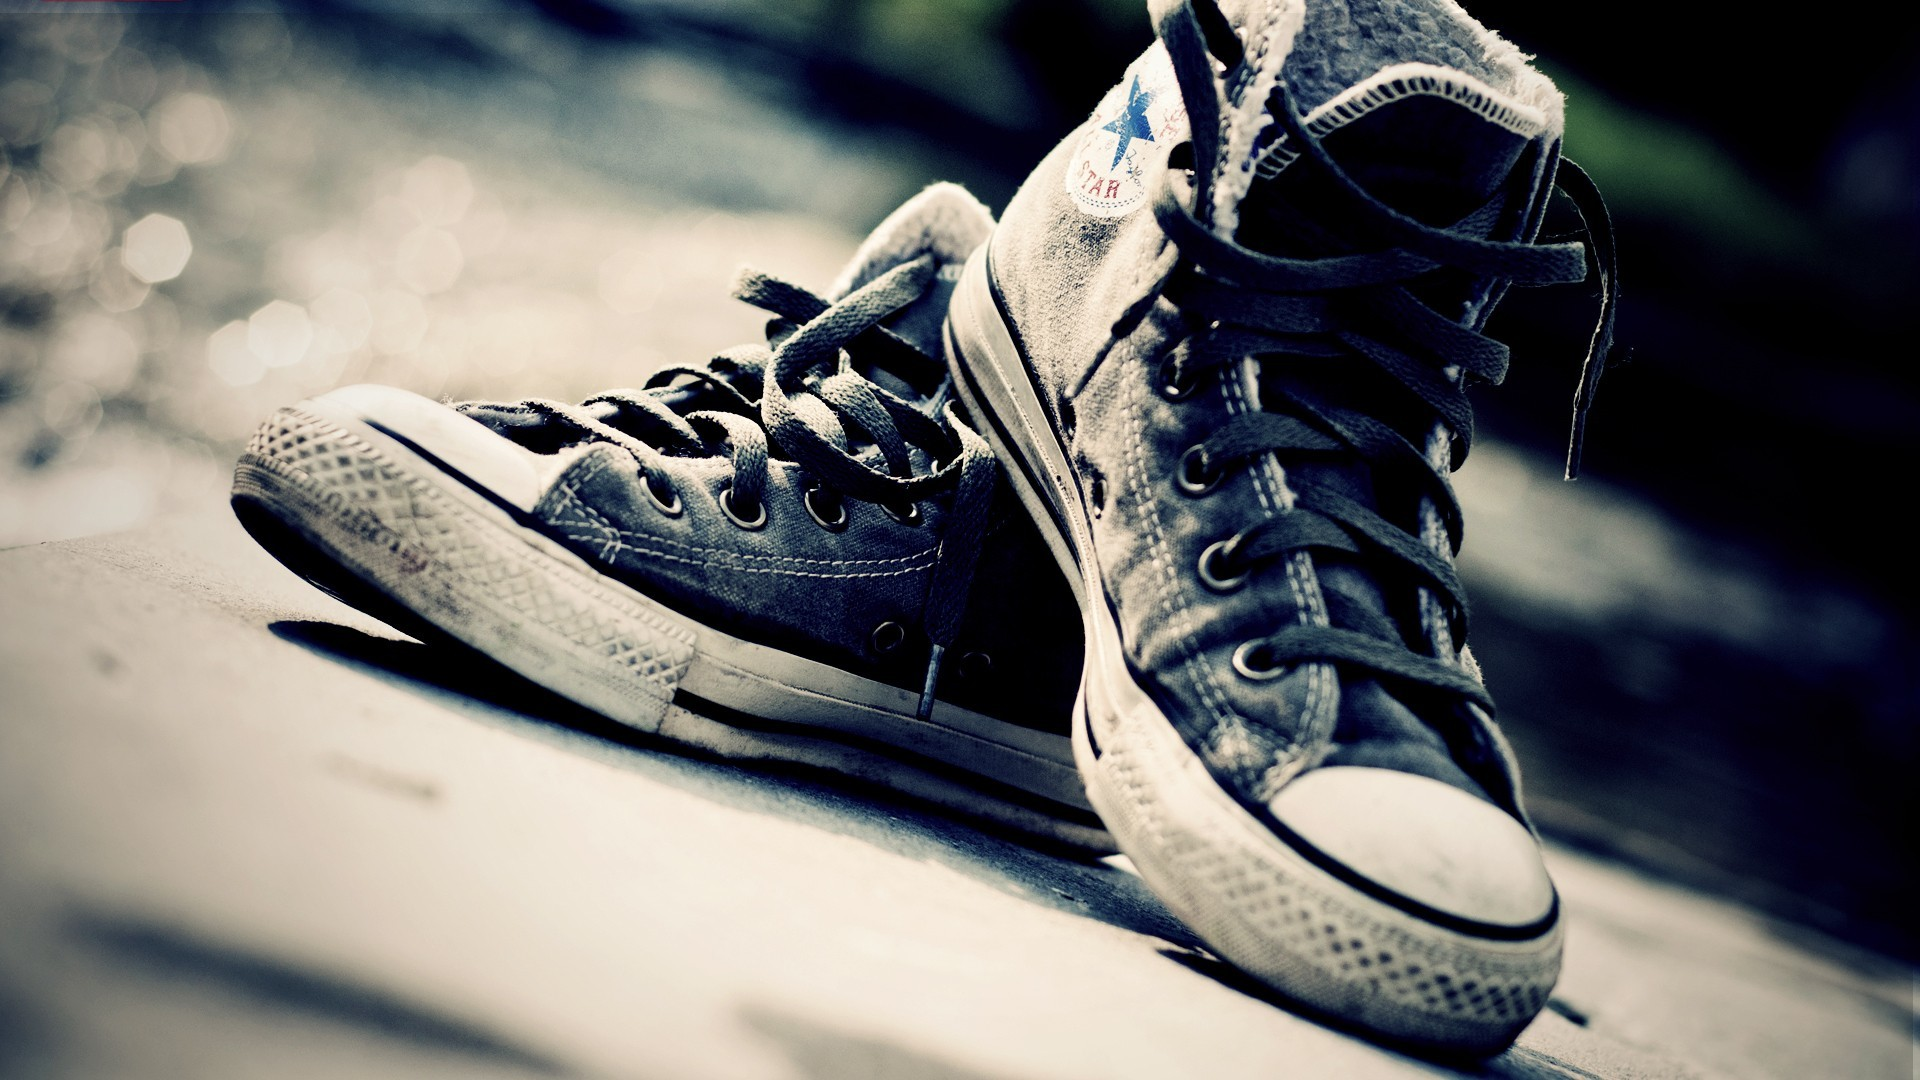 Cool Shoes HD Wallpapers (76+ images)